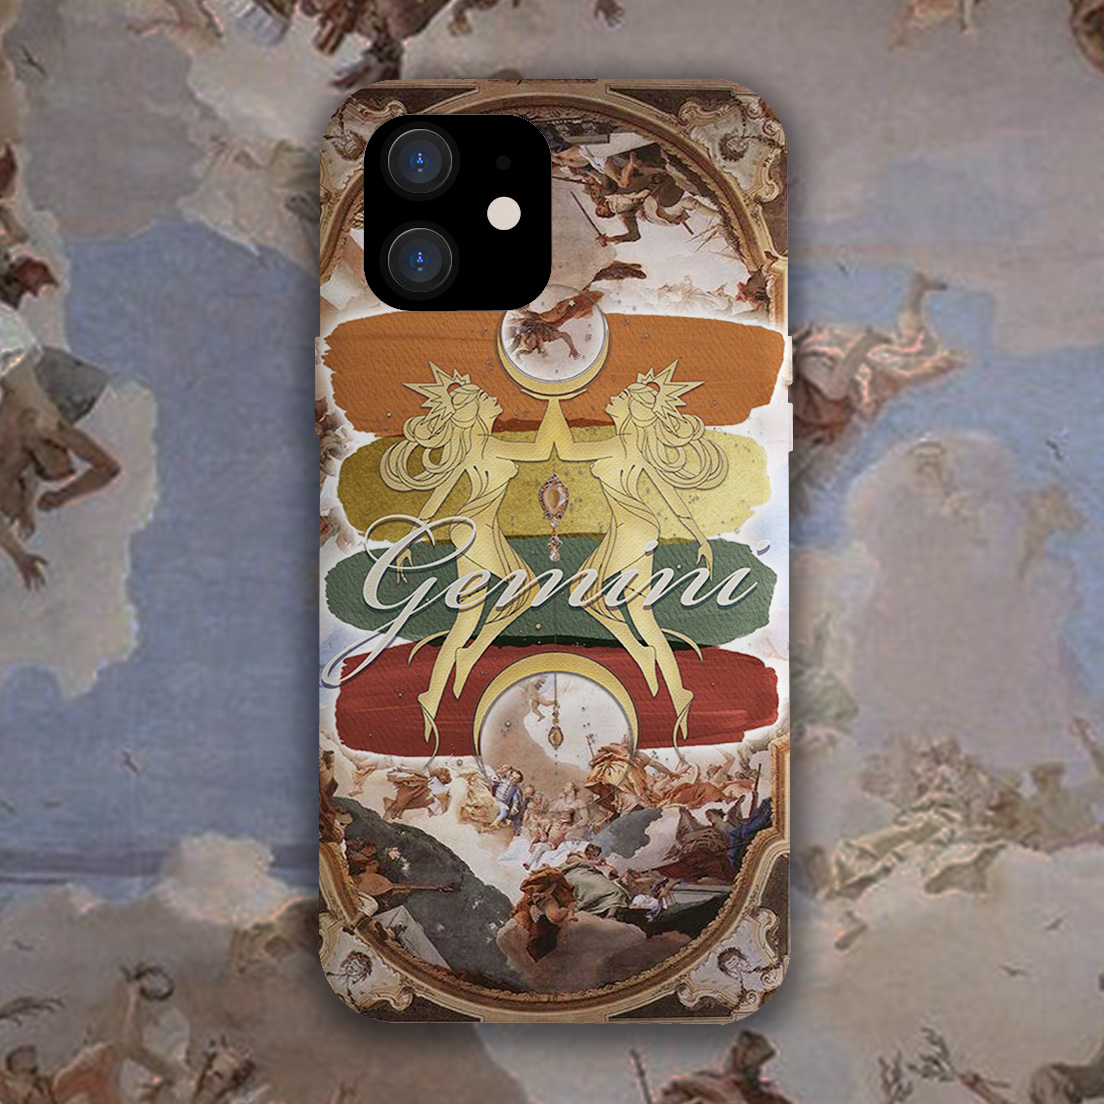 To Rita Lolita, Gemini vintage classic oil painting, original Victorian style, Japanese mobile phone shell